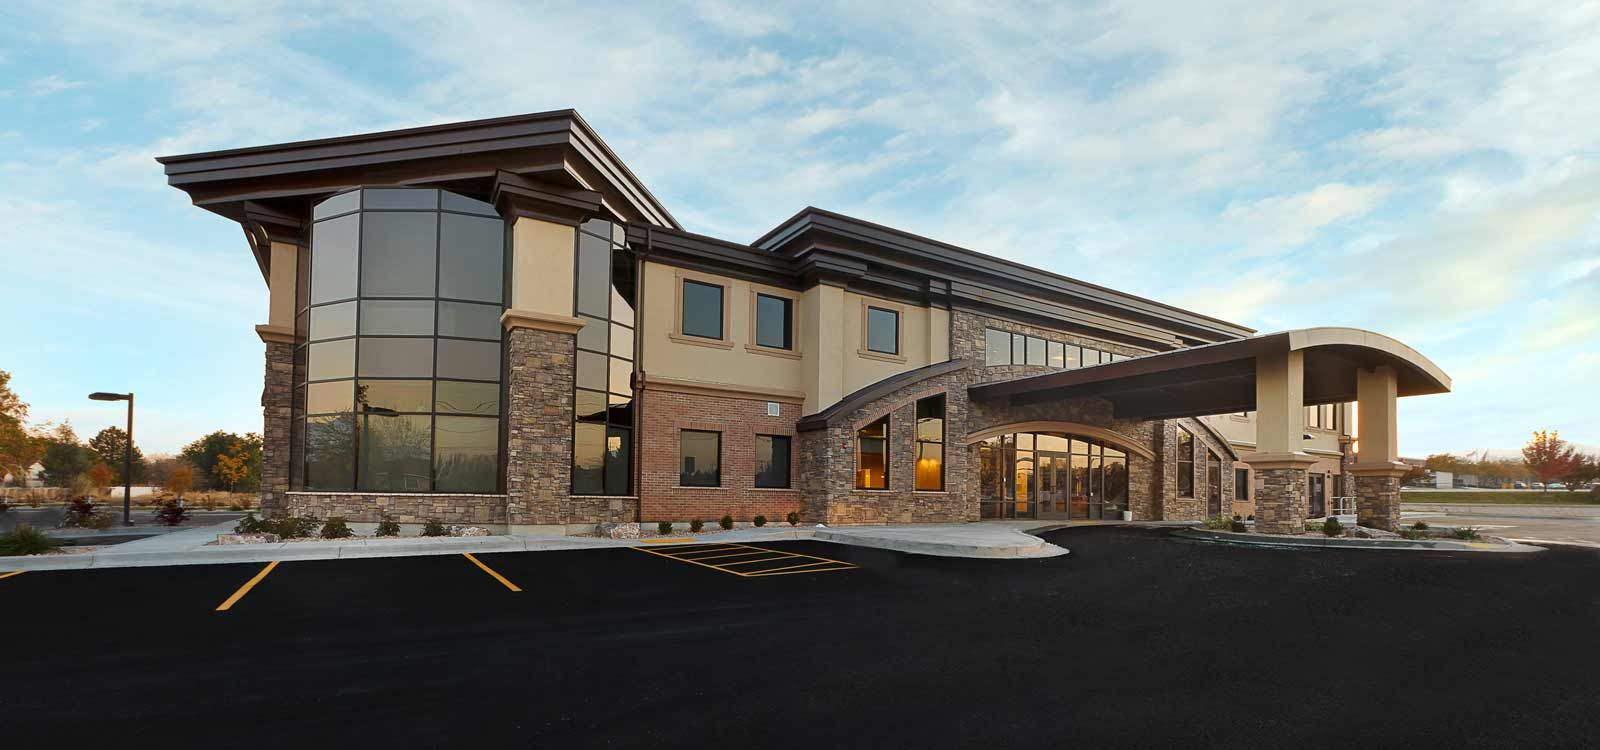 Granger Medical, West Jordan Utah